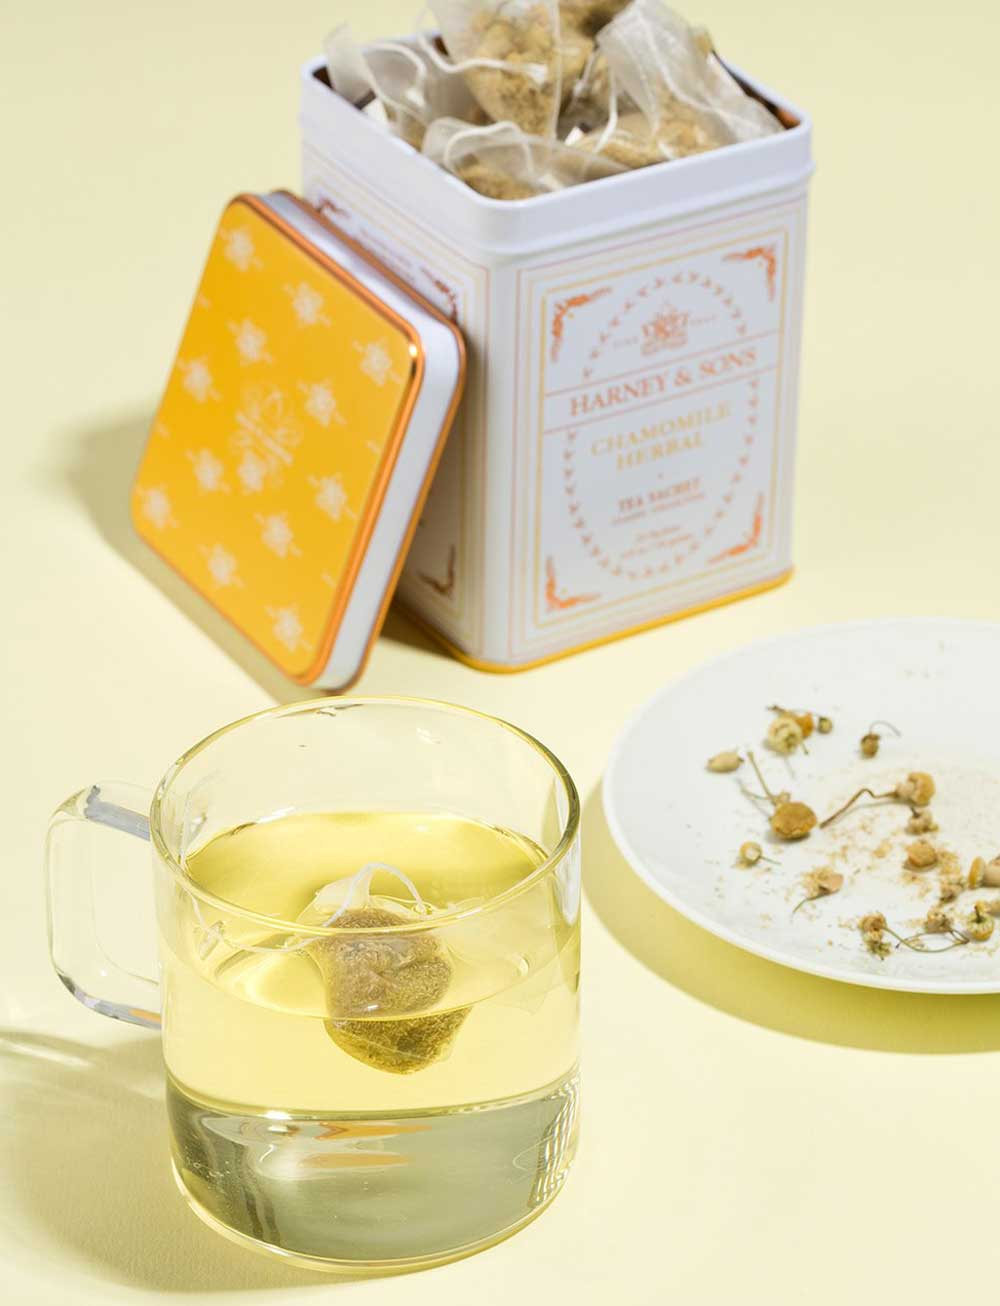 Chamomile Herbal Tea Tin